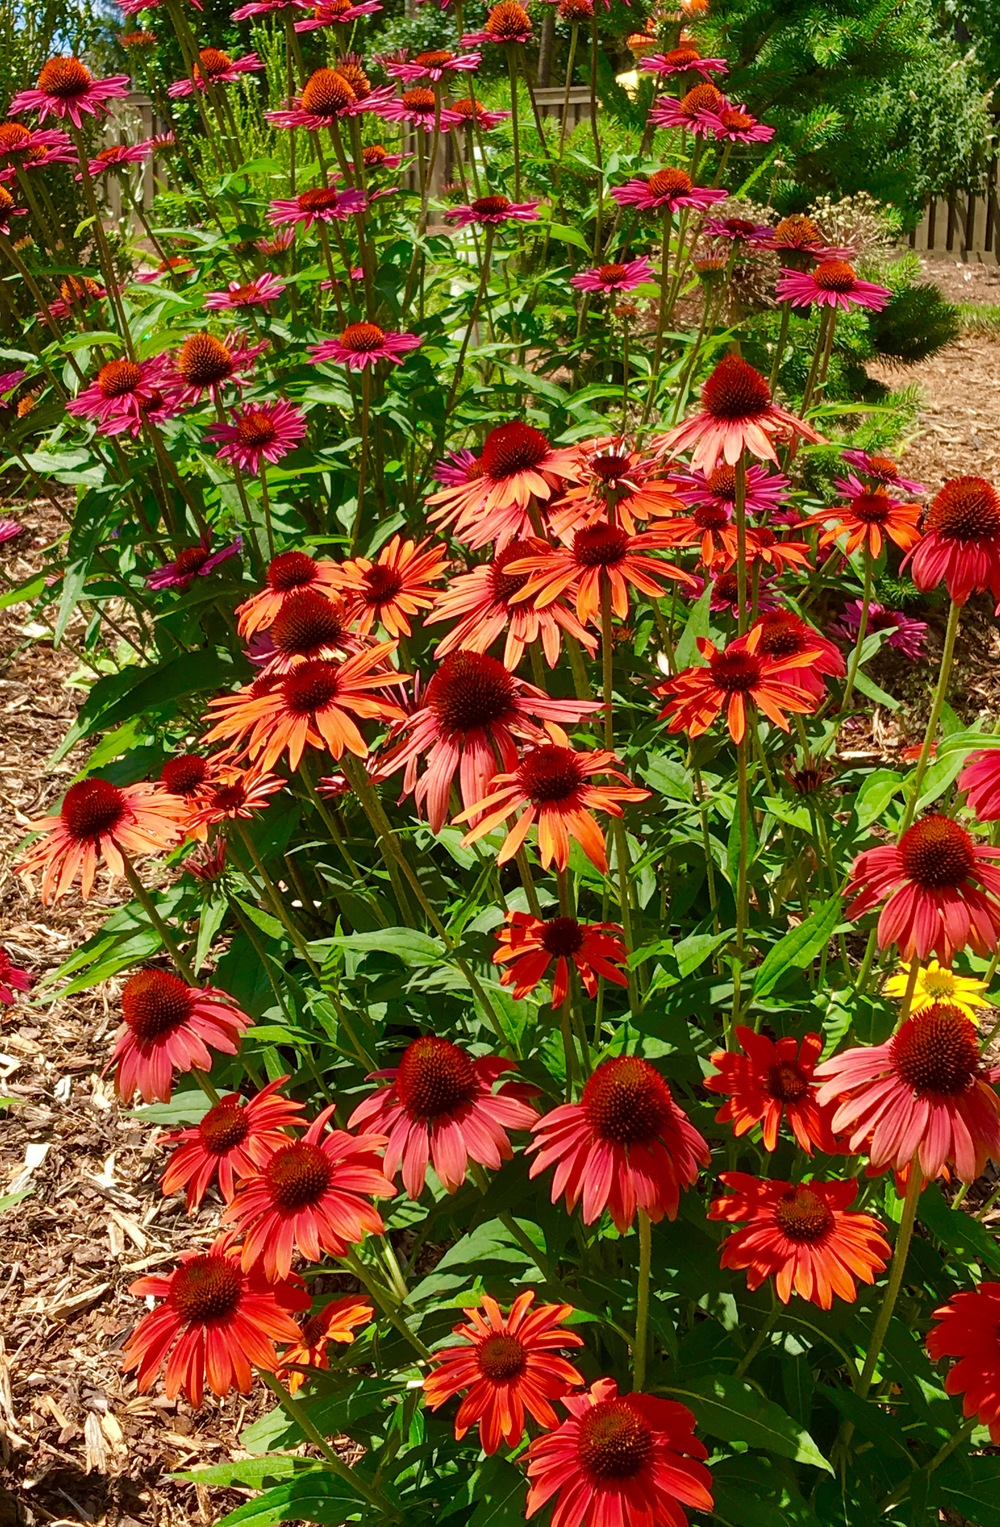 'Cheyenne Spirit' coneflowers in the blue bird garden.